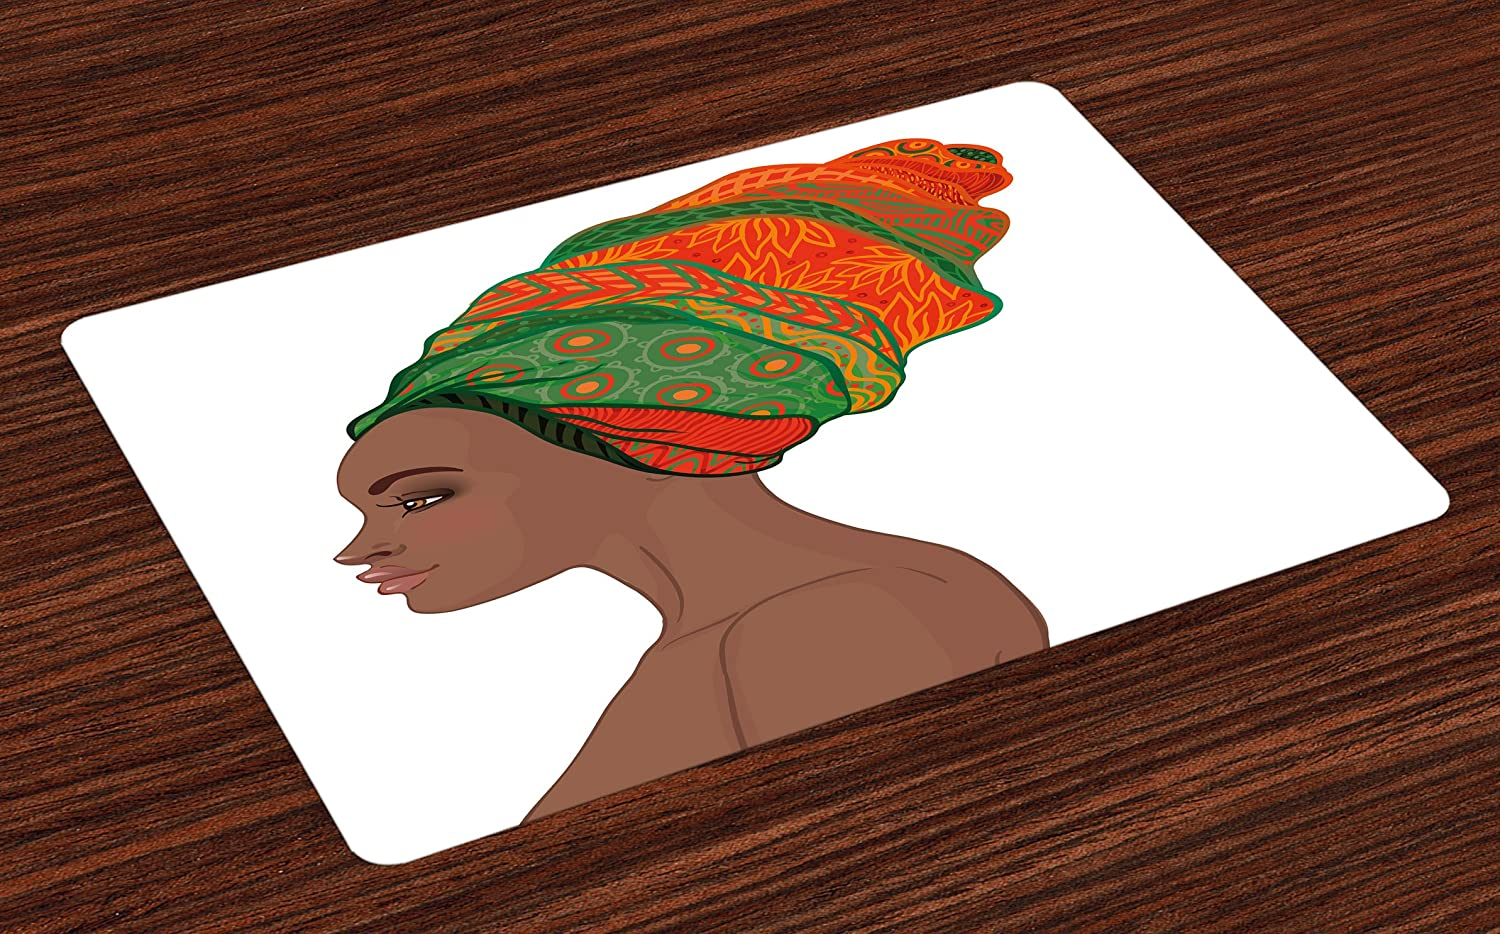 Ambesonne African Place Mats Set of 4, Afro Female Young Beauty Traditional Hair Dress Turban Ornate, Washable Fabric Placemats for Dining Room Kitchen Table Decor, Chocolate Scarlet